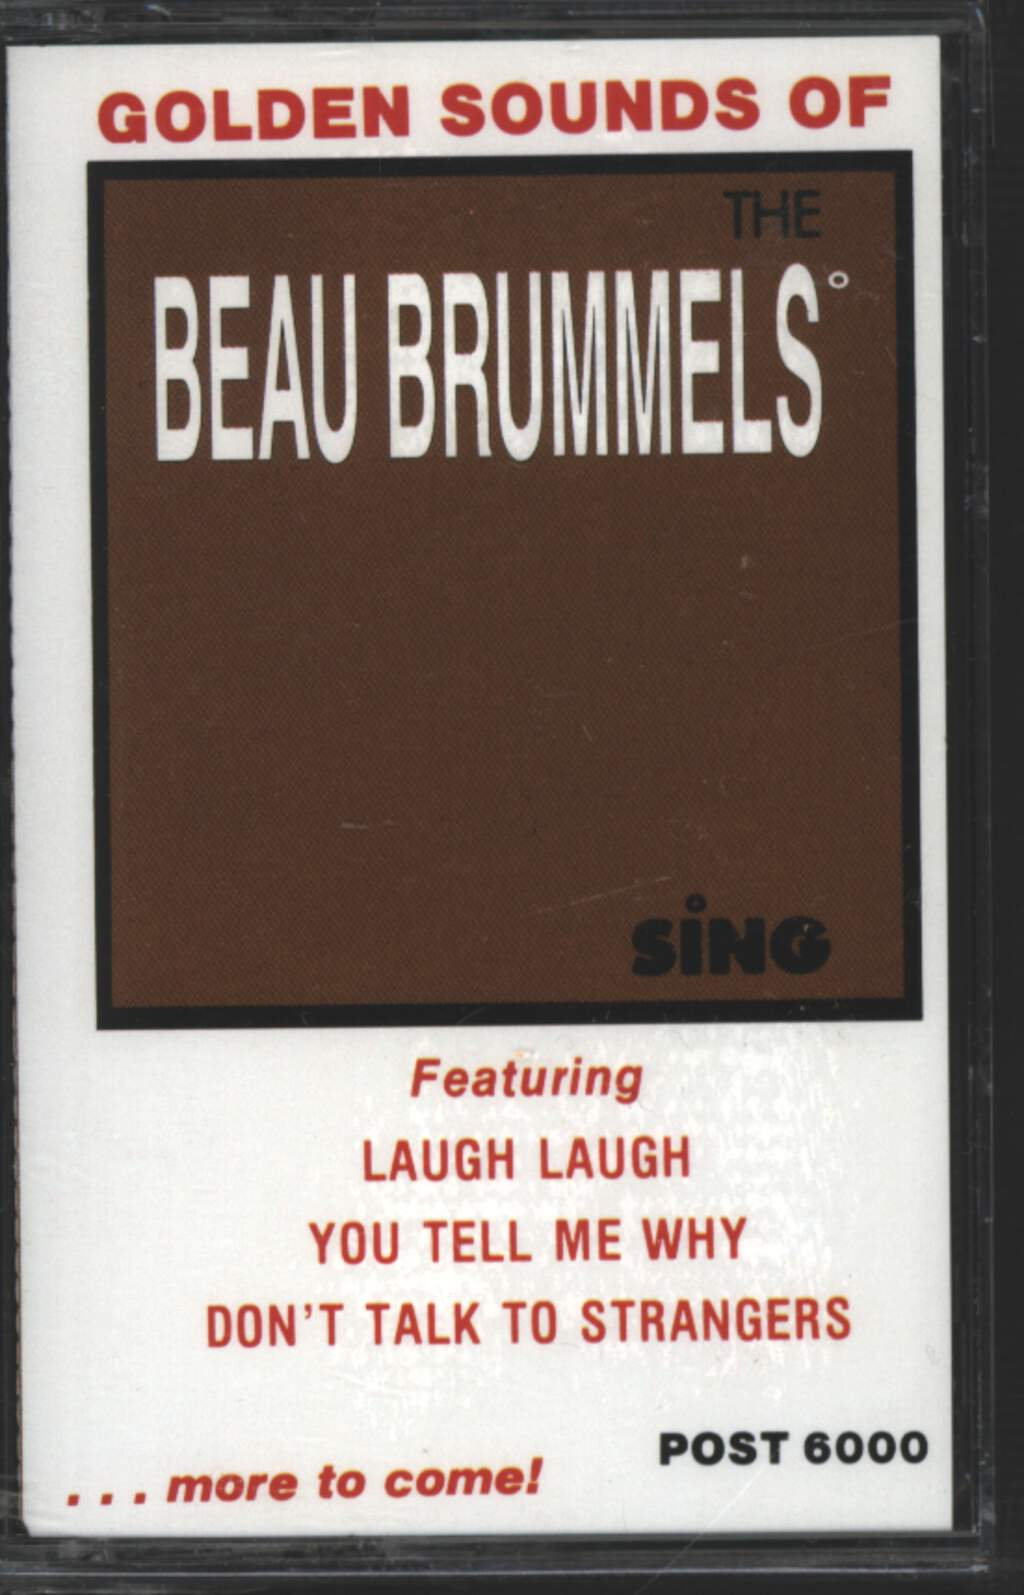 The Beau Brummels: The Beau Brummels Sings, Tape